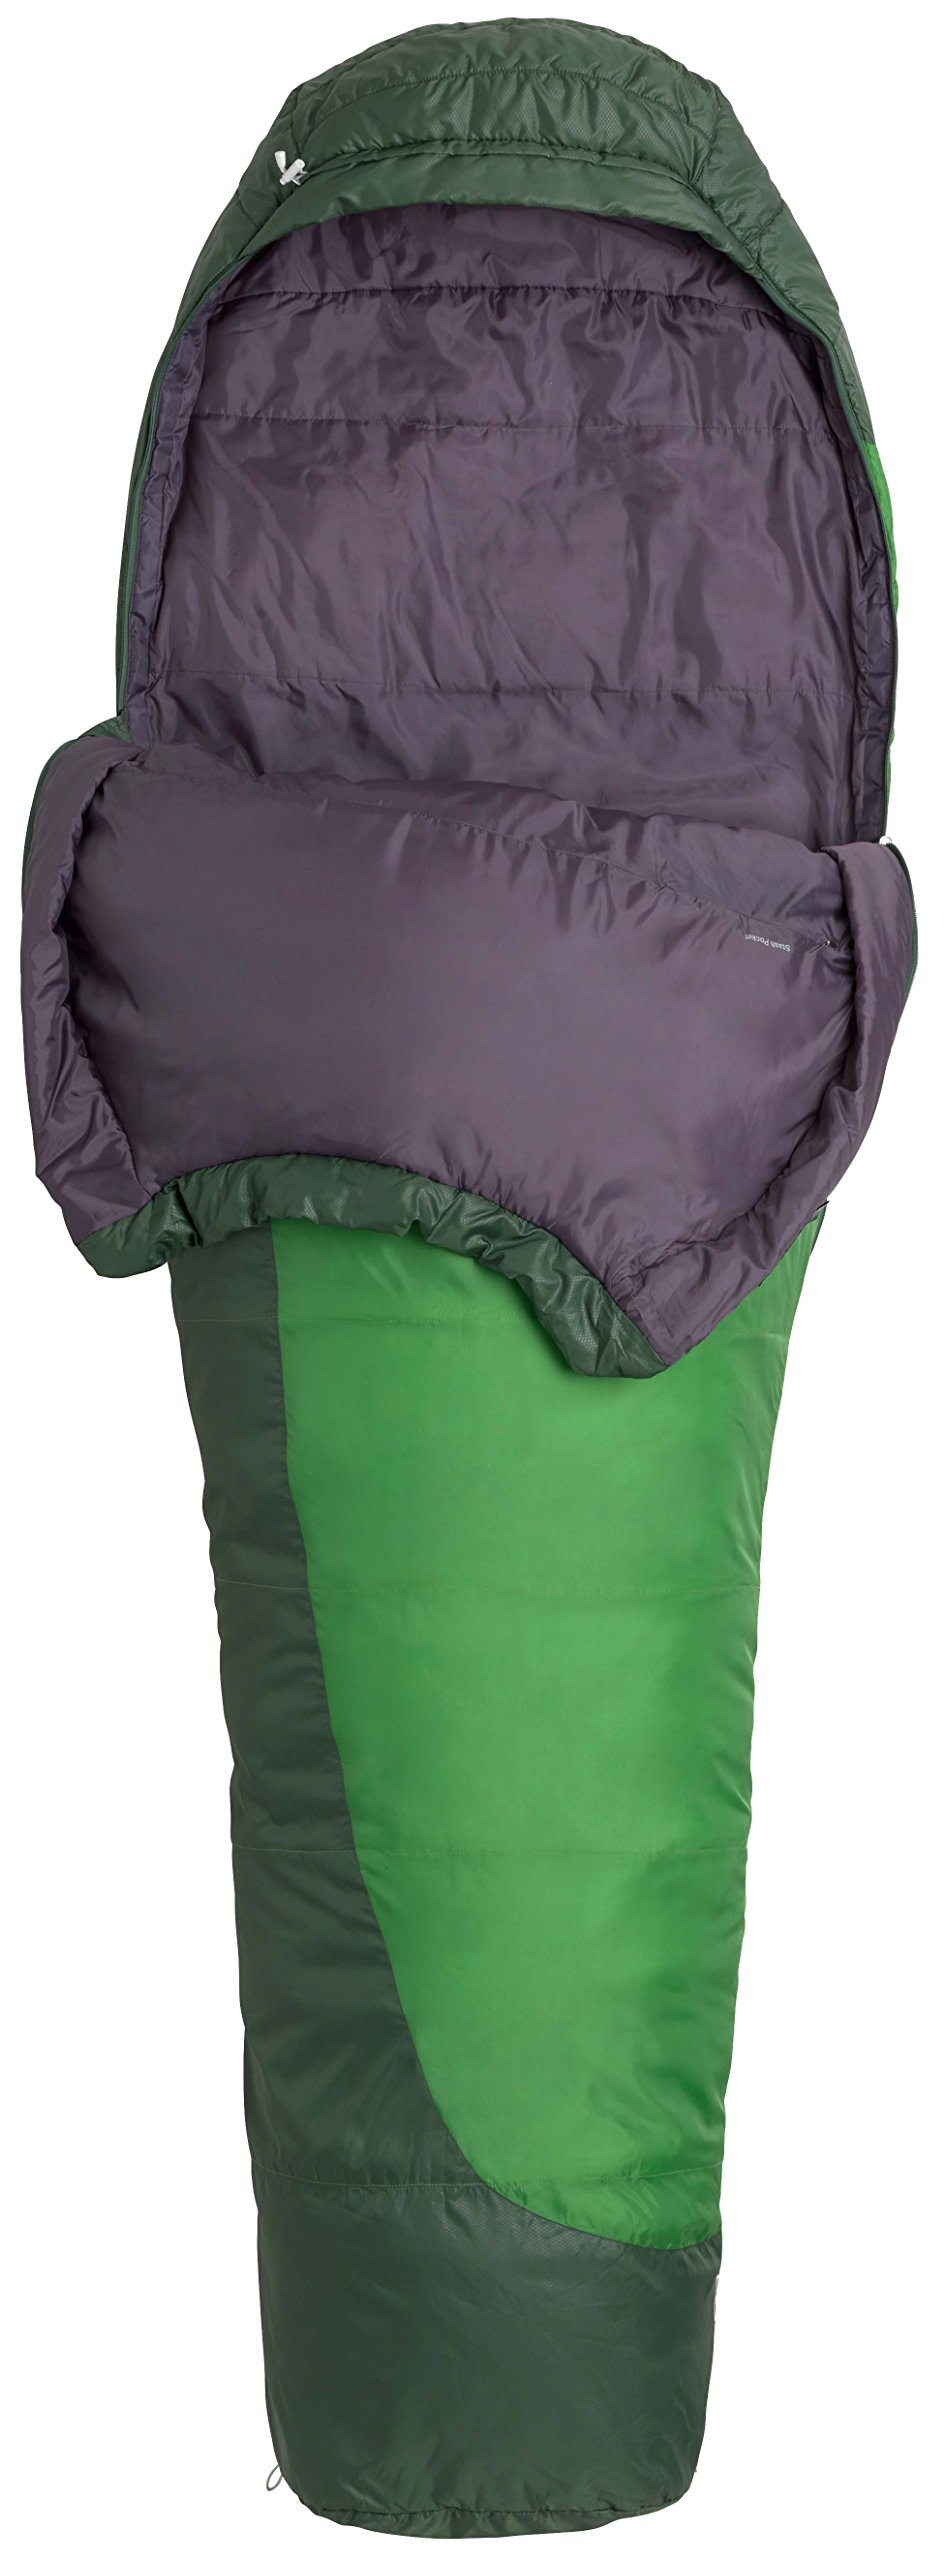 Marmot Trestles 30 Mummy Sleeping Bag, 30-Degree Rating 4